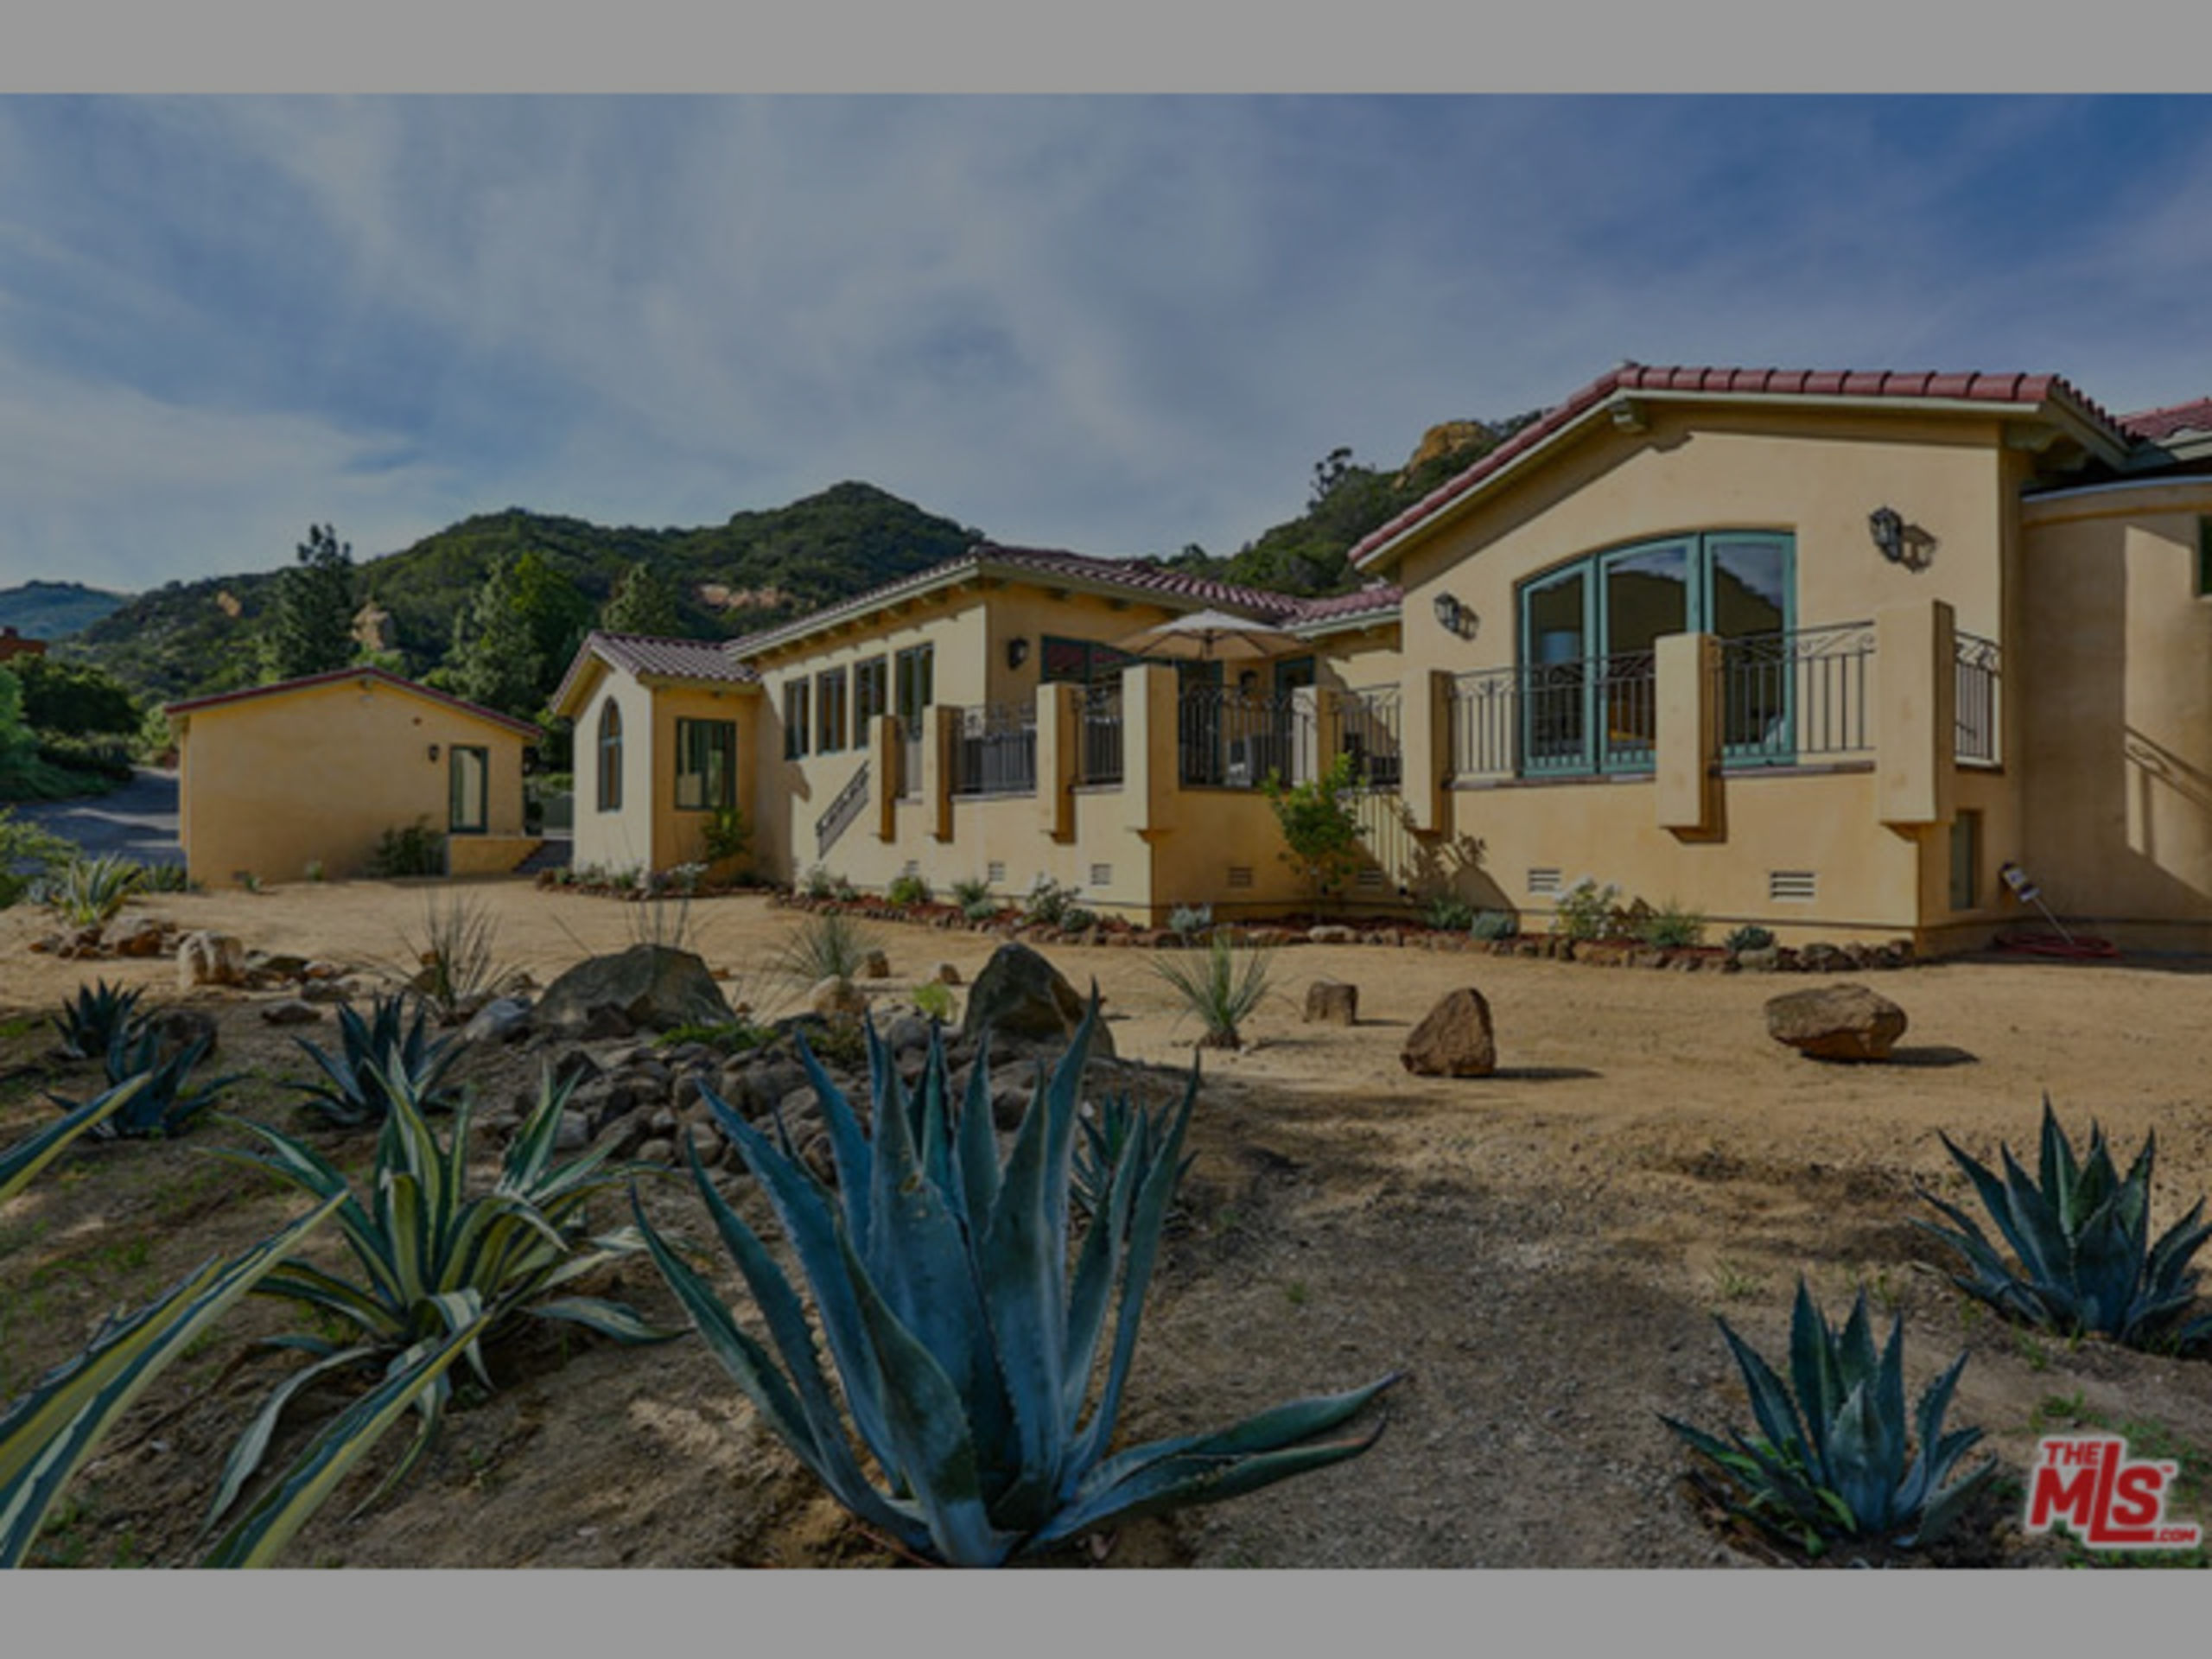 SOLD | NEW CONSTRUCTION W/ STUNNING VIEWS ON 11 ACRES | $2,395,000